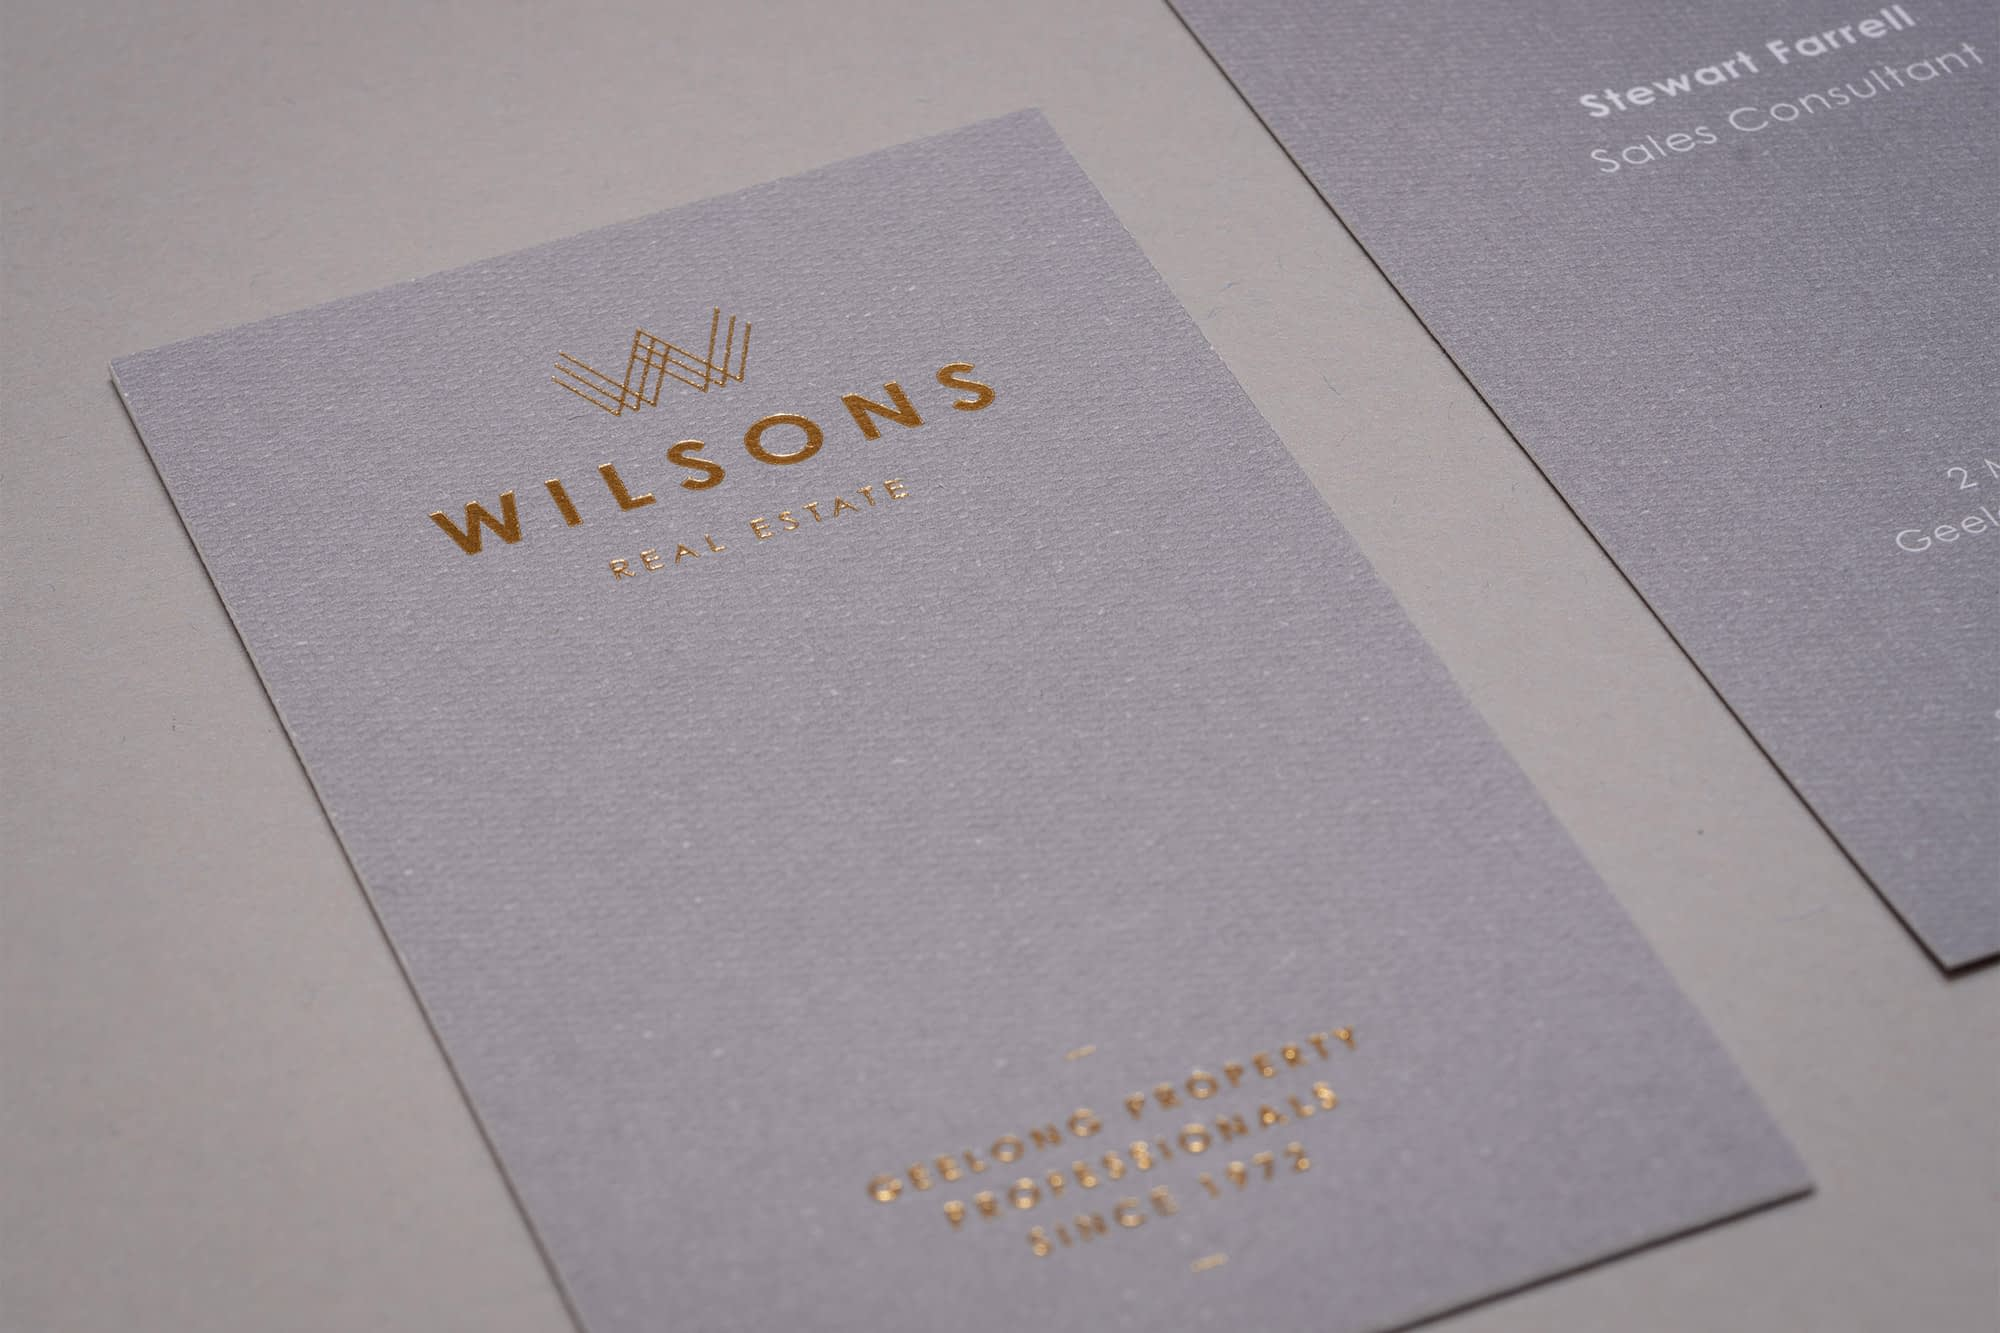 Wilsons Real Estate business card